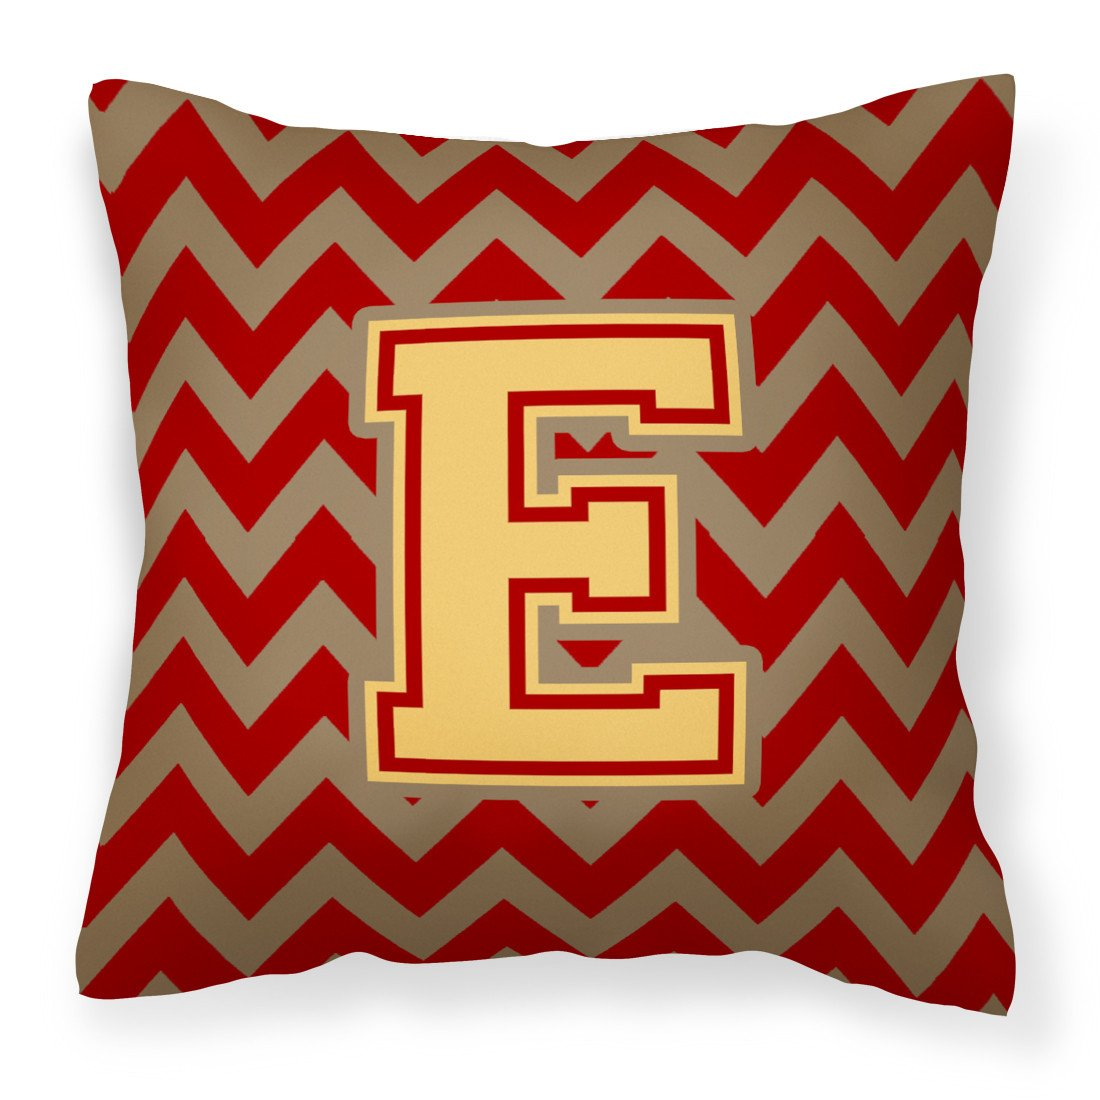 Letter E Chevron Garnet and Gold  Fabric Decorative Pillow CJ1048-EPW1414 by Caroline's Treasures